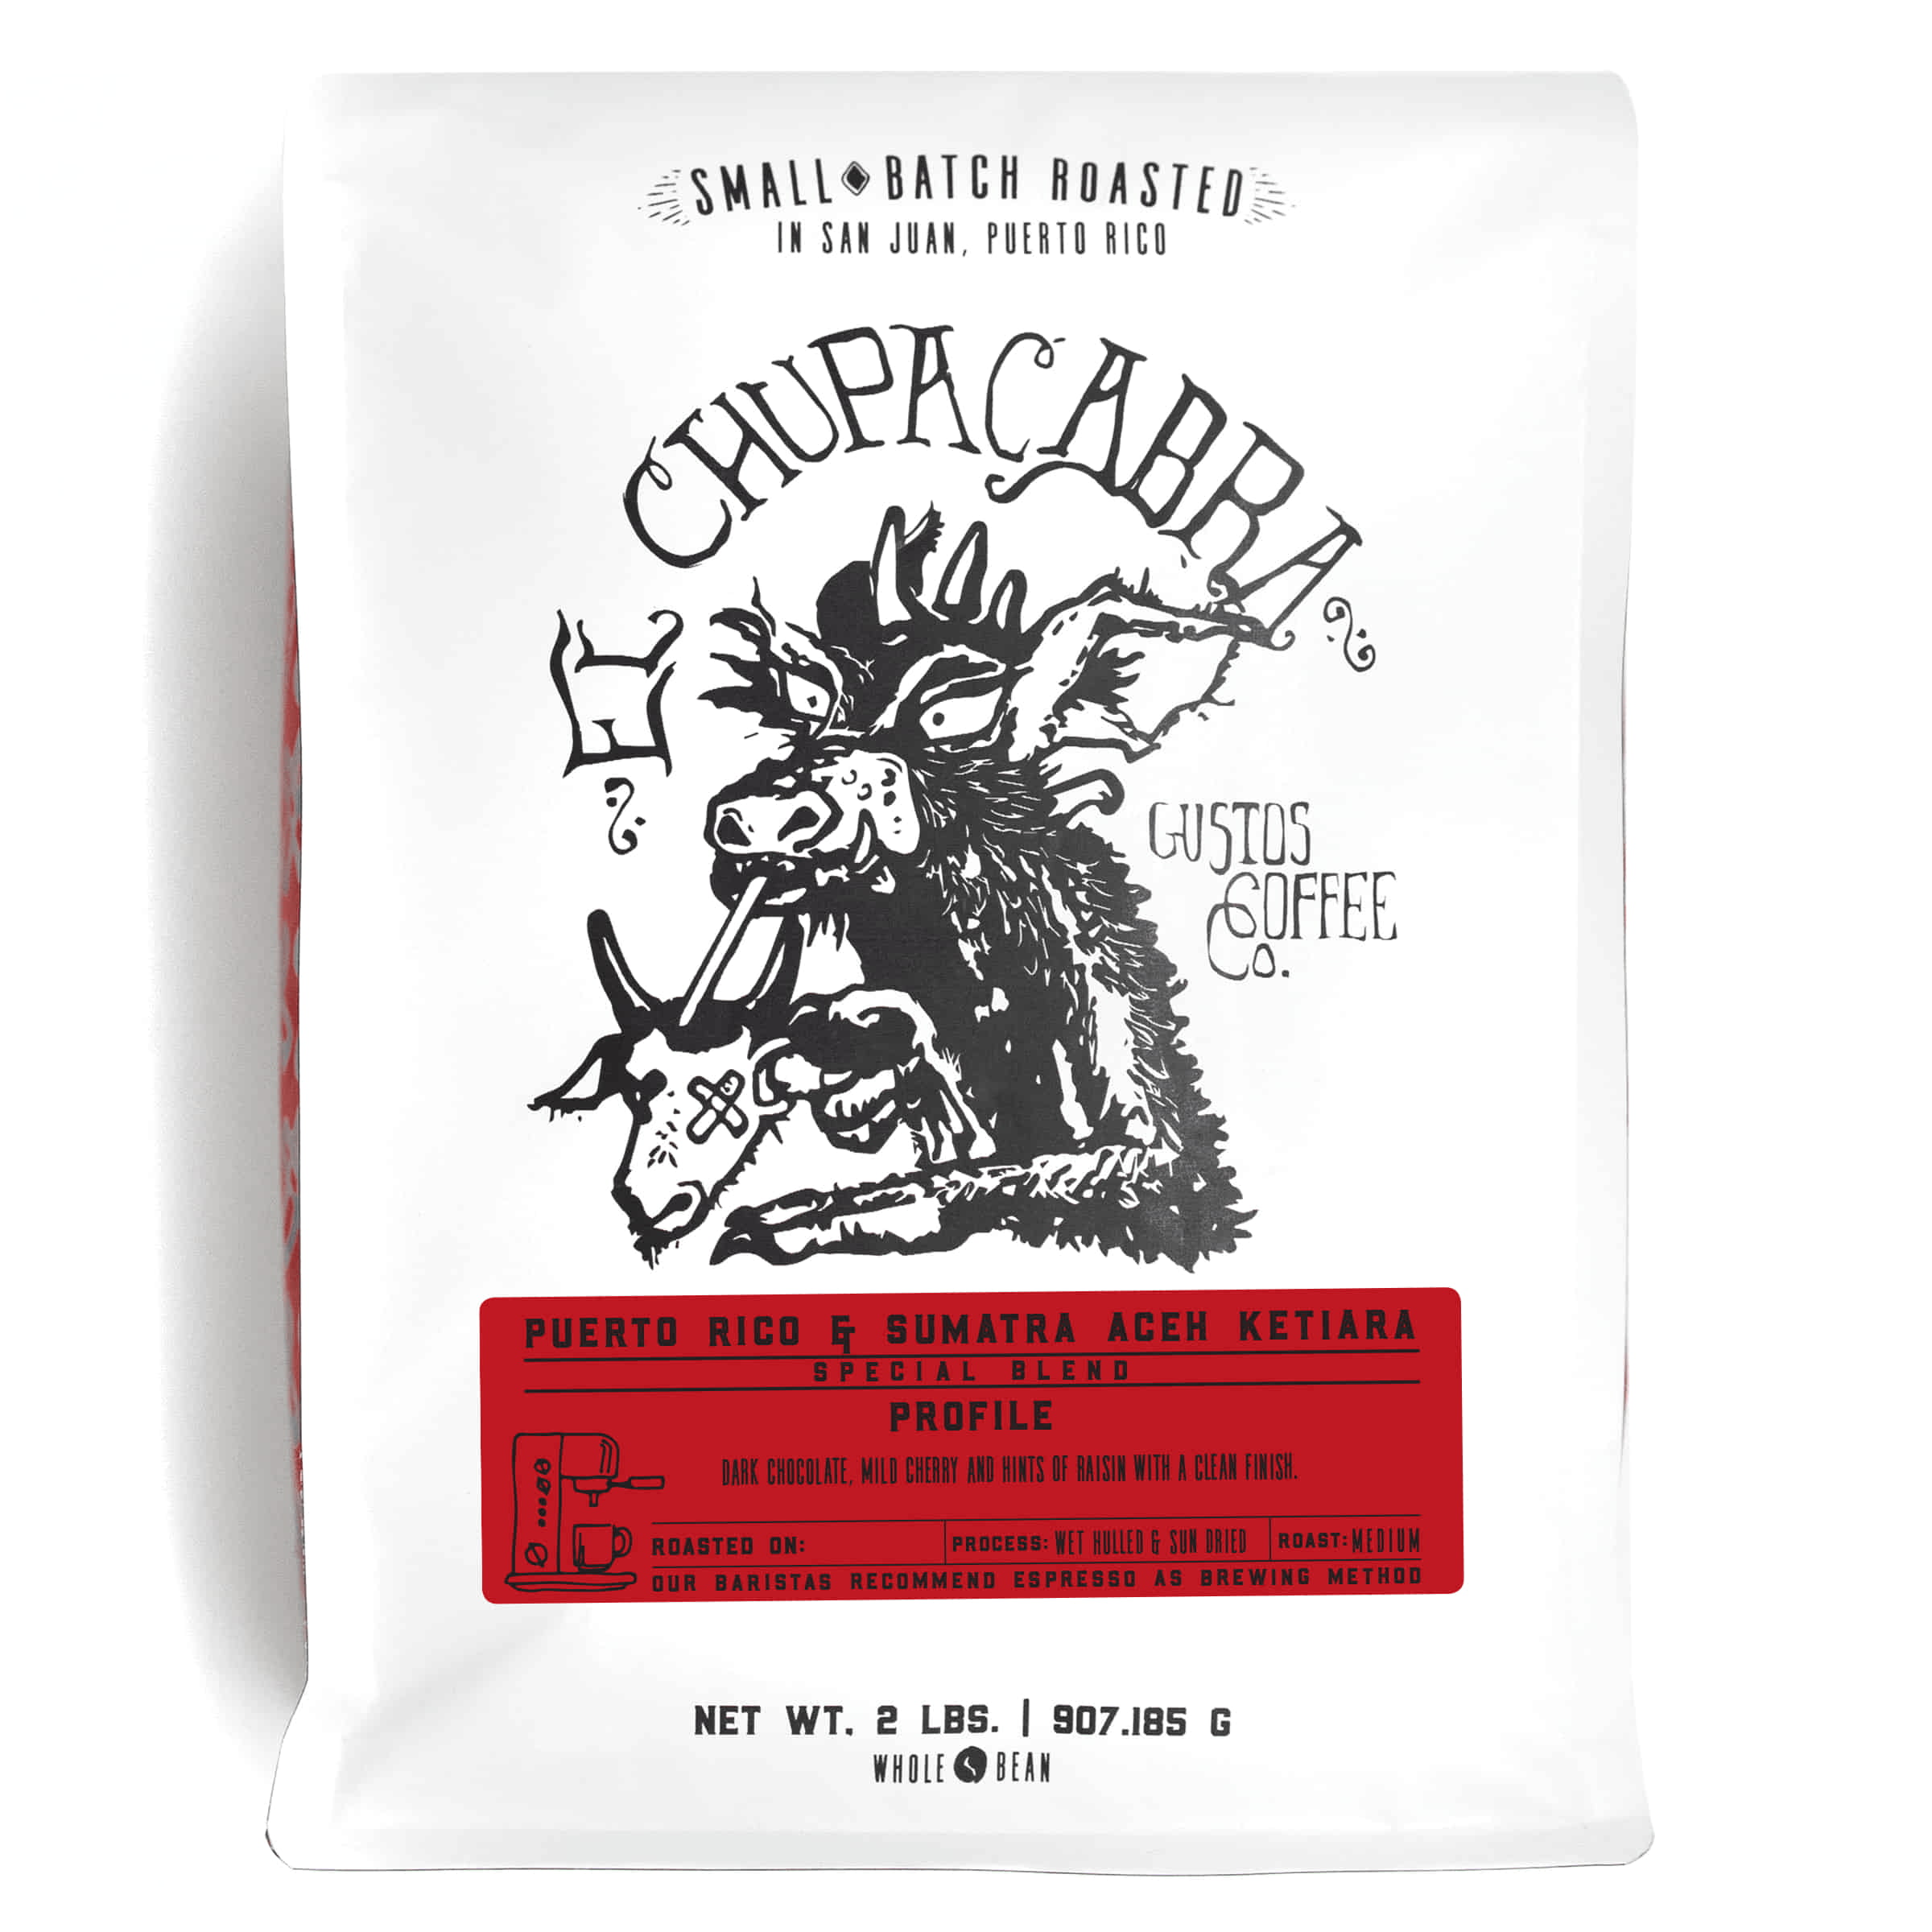 A 2lb bag of Specialty Coffee Blend Puerto Rico andSumatra Aceh Ketiara El Chupacabra by Gustos Coffee Co